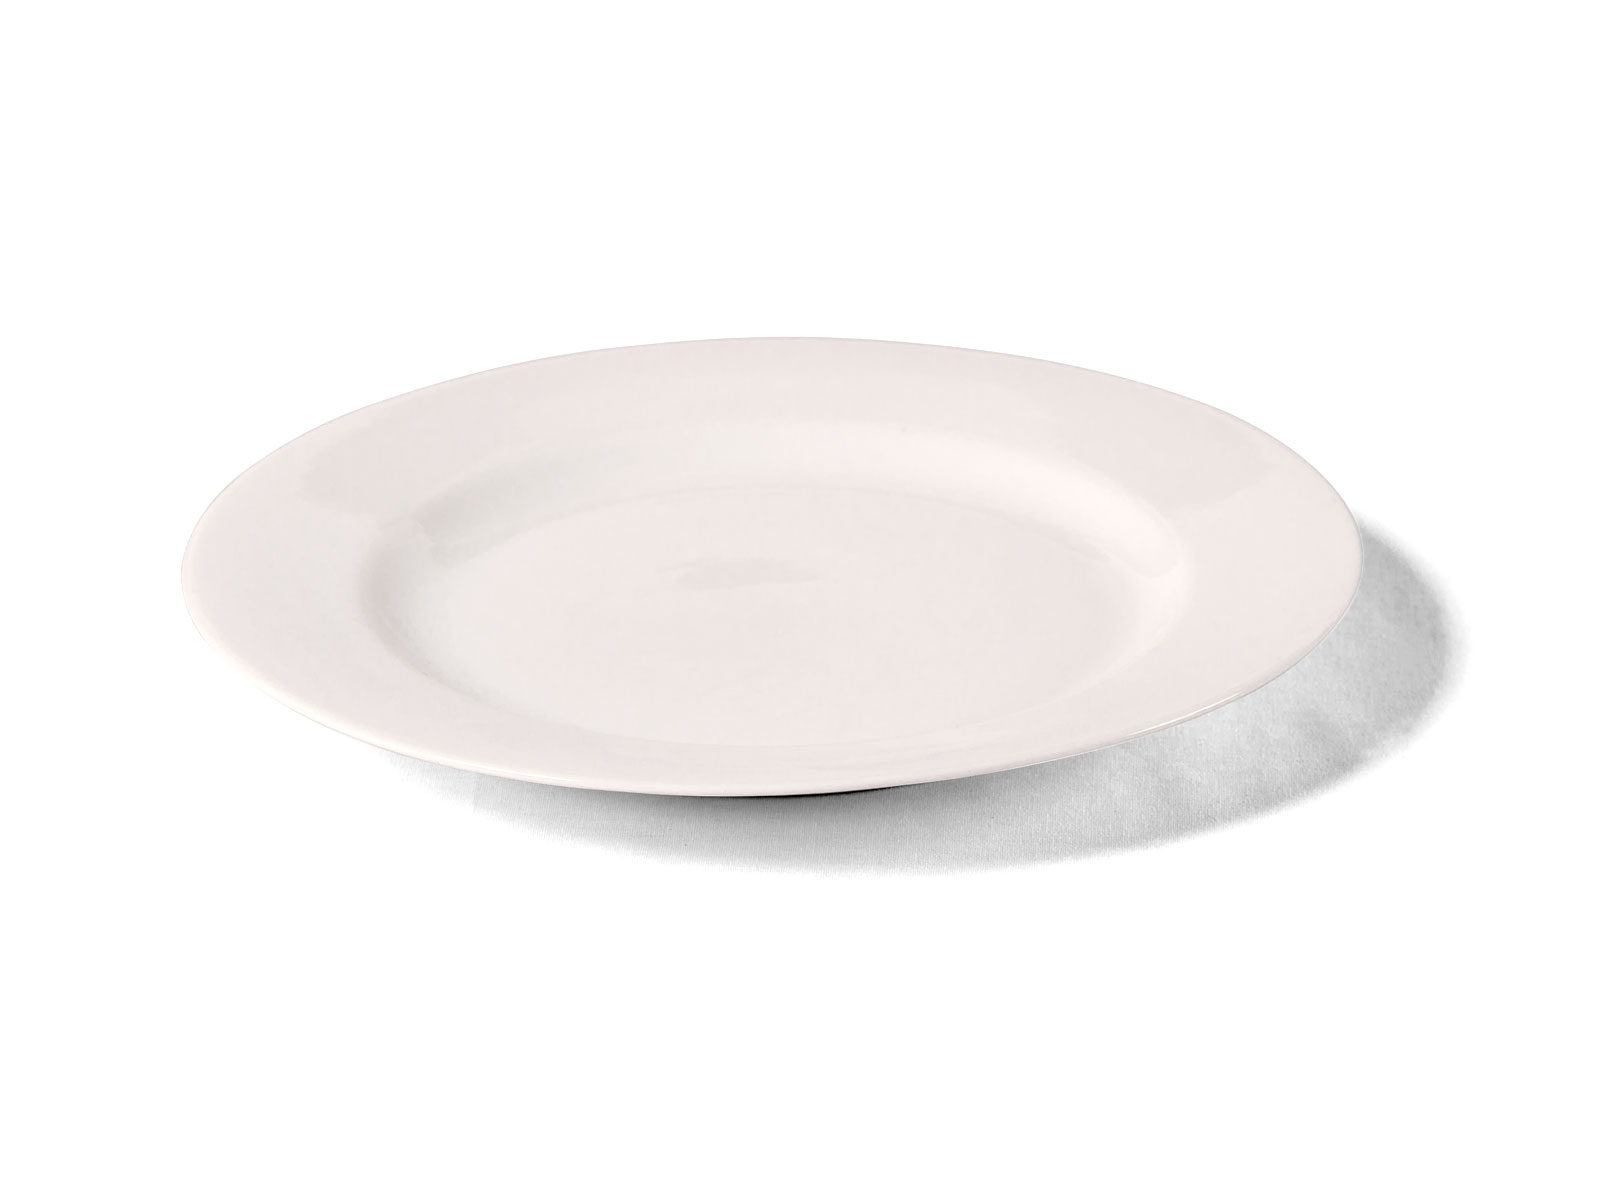 Plate – White Entree 23cm